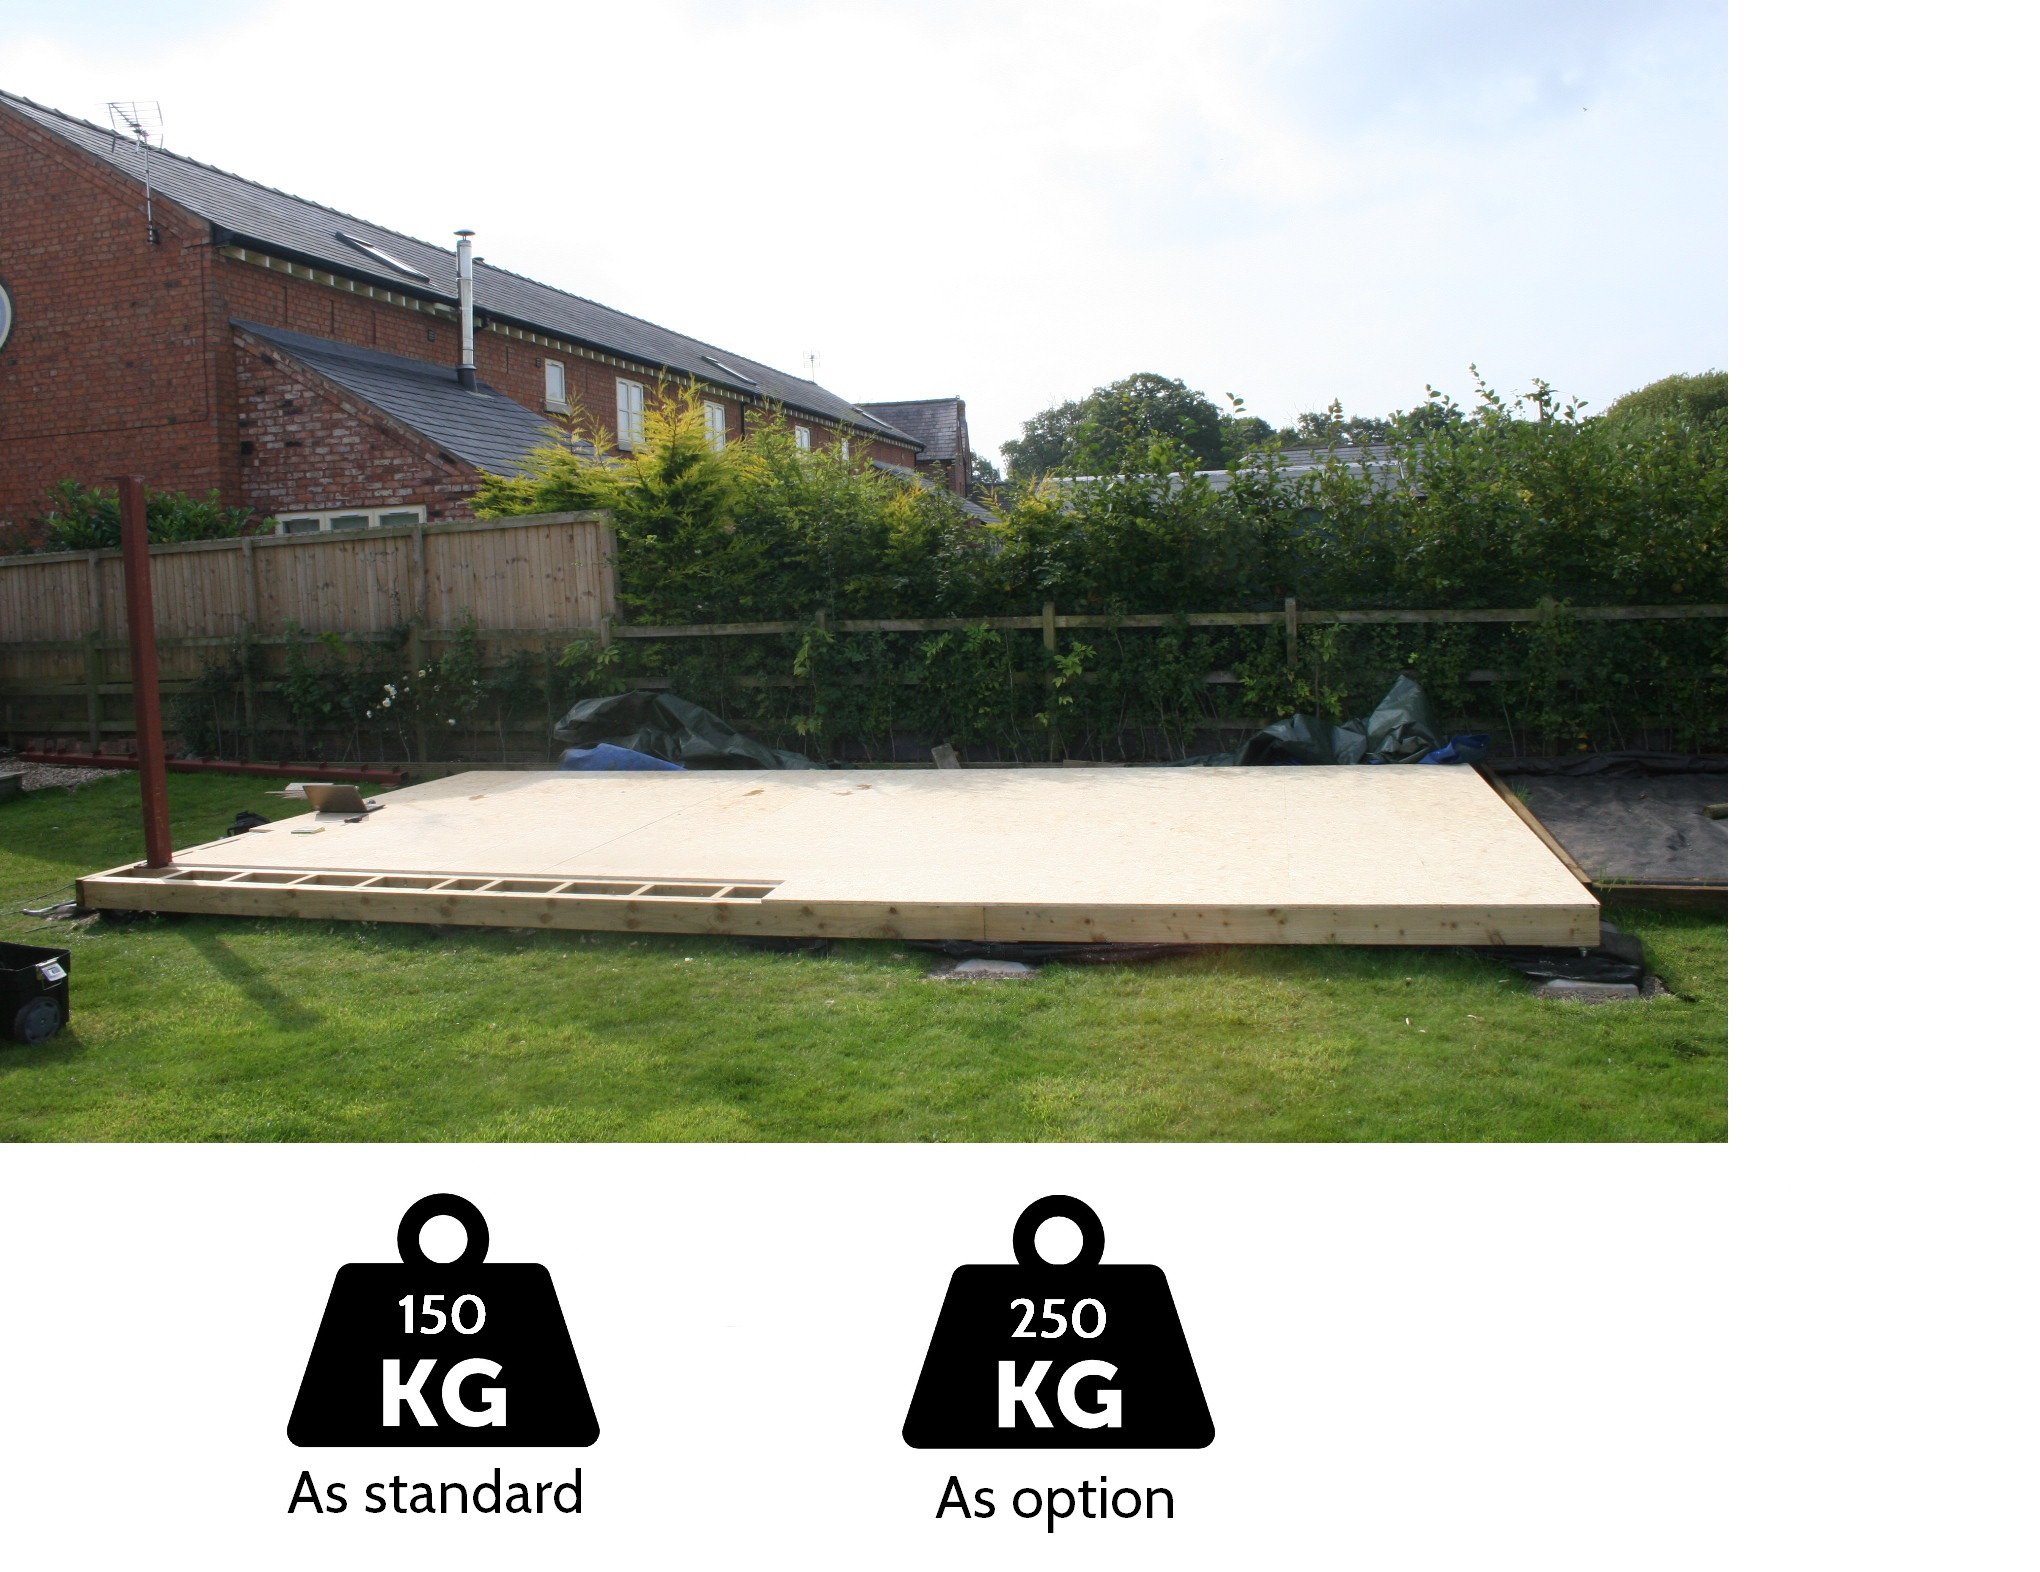 Floor Loading Capacity - The floor structure and foundation systems for all of our garden rooms are designed as standard to take loads up to 150 kgs per square meter, which is the same design load required for a residential home.  This ensures a solid feel to the floor structure and plenty of loading capacity for people and the largest of furniture for everyday use. As home gyms have become more popular over the last few years, we can offer an upgraded floor strength option.  This increases the loading capacity of the floor and the foundation system to 250 kgs per square meter, to meet extra loading requirement associated with a home gym.